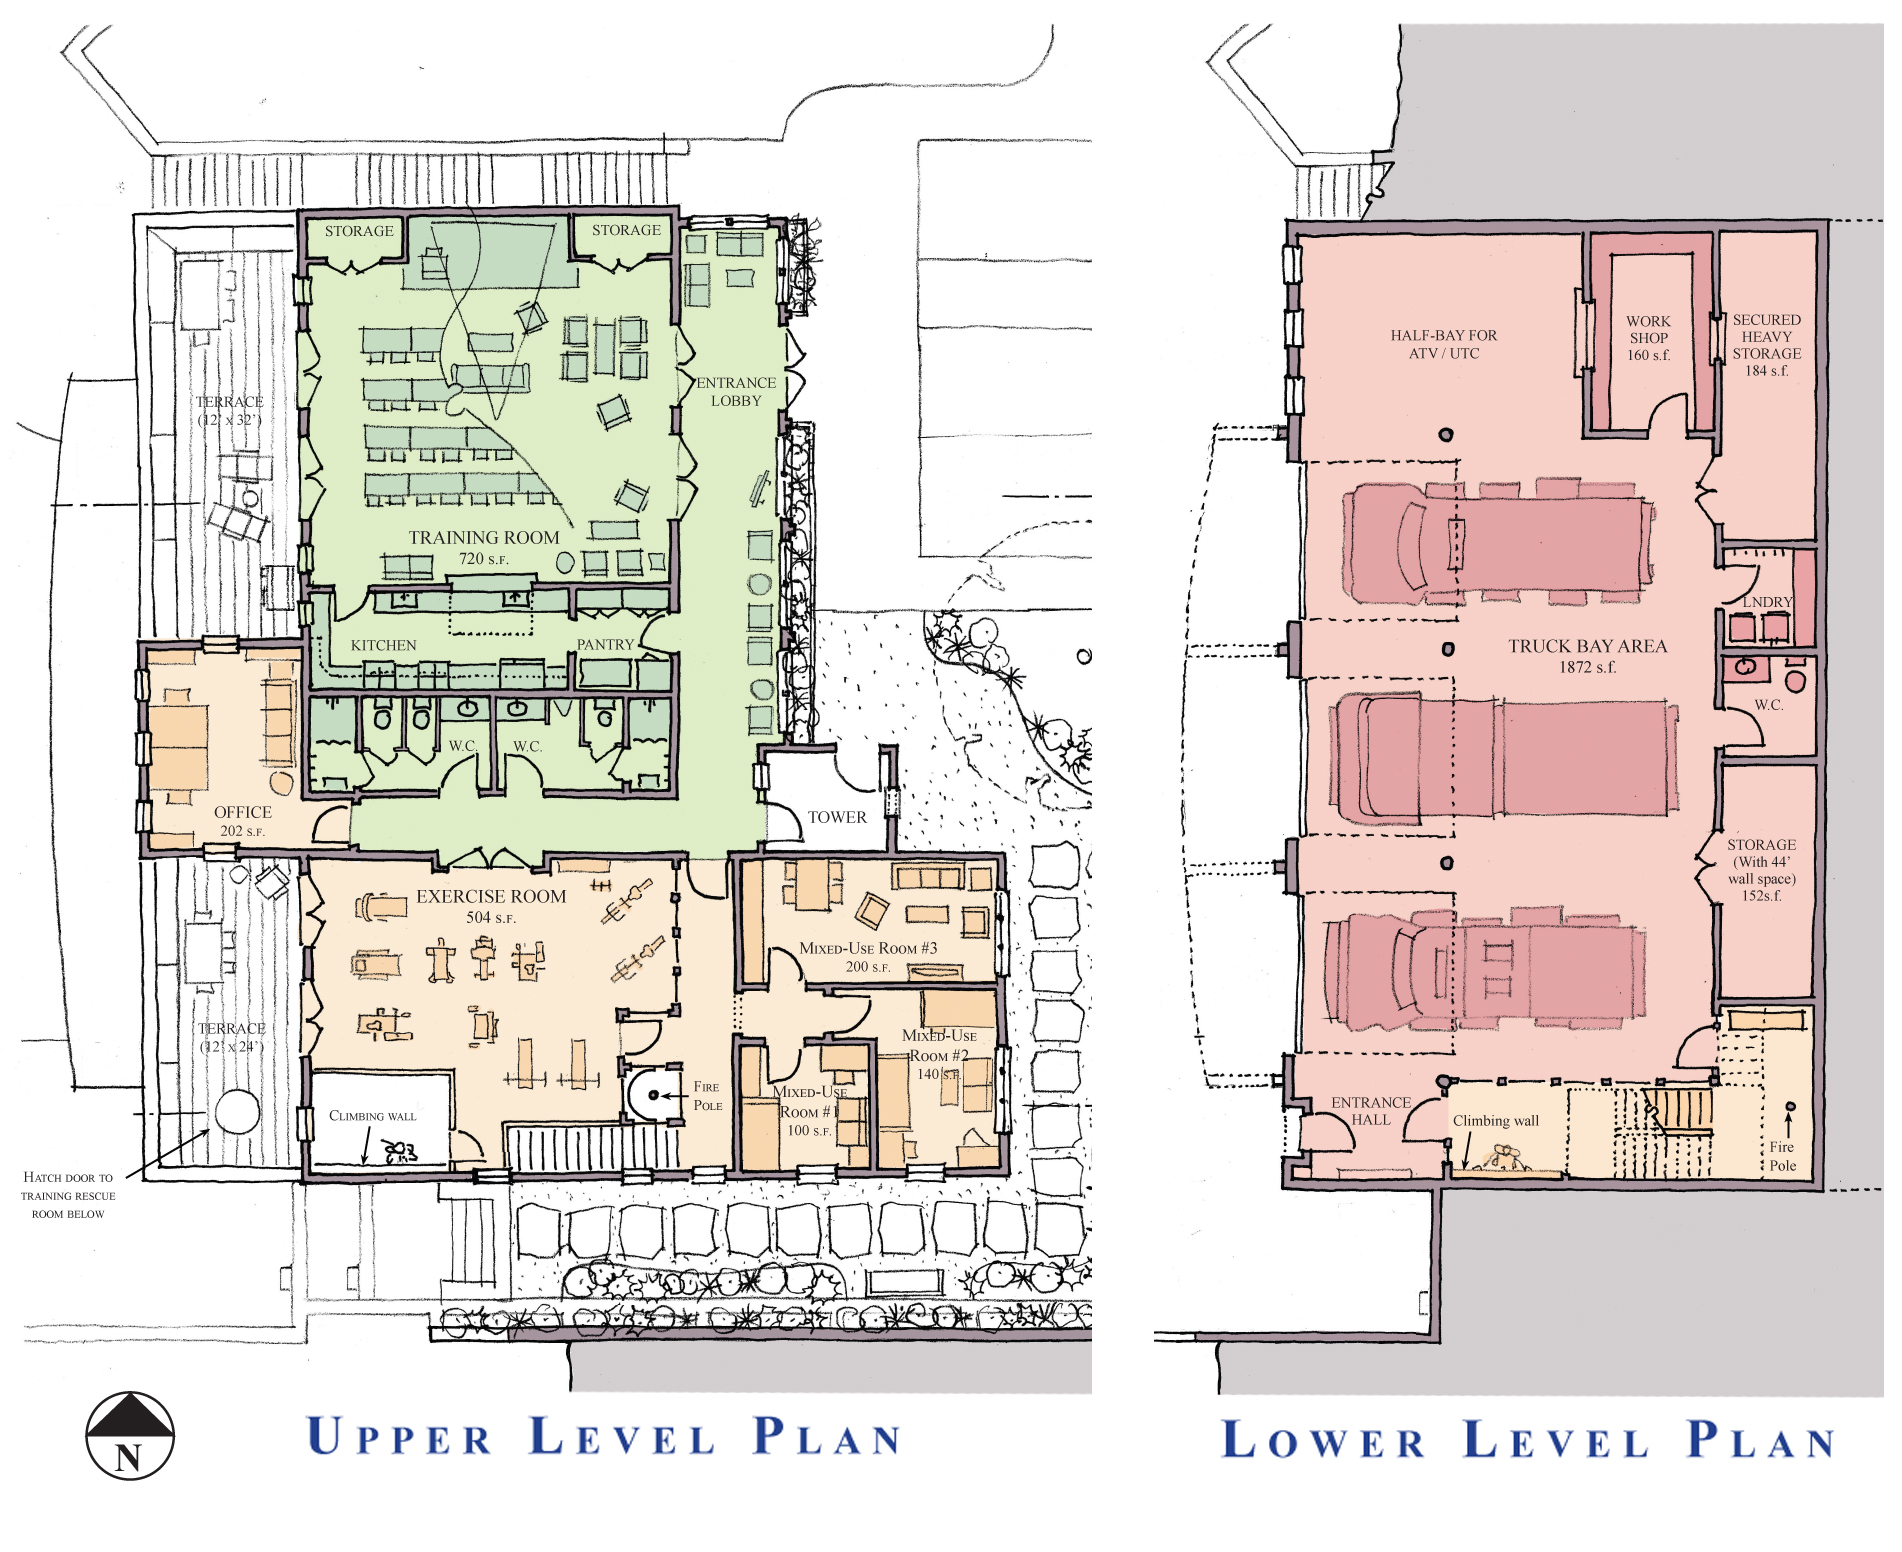 FOUR MILE FIRE STATION COMPETITION